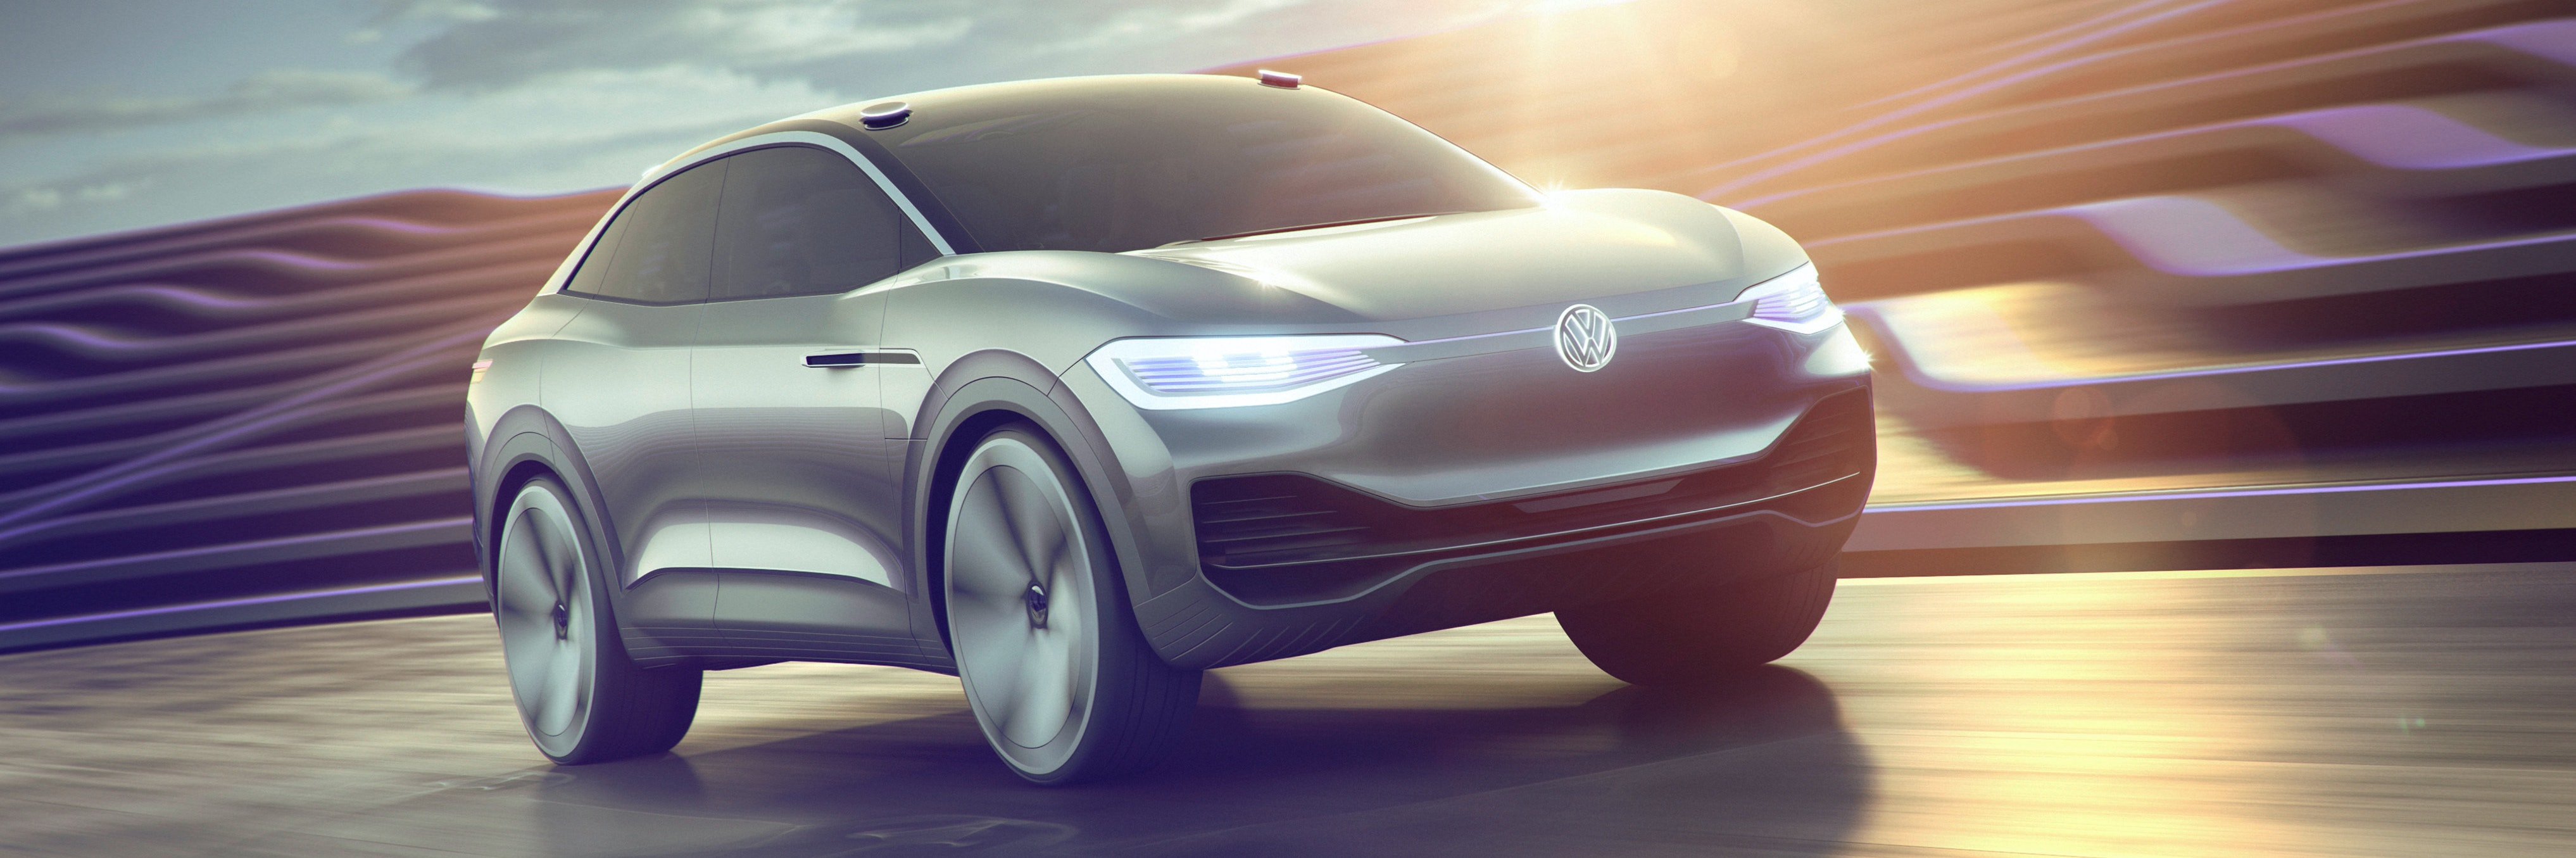 I.D. Crozz the VW electric crossover car that will go into production in 2020.